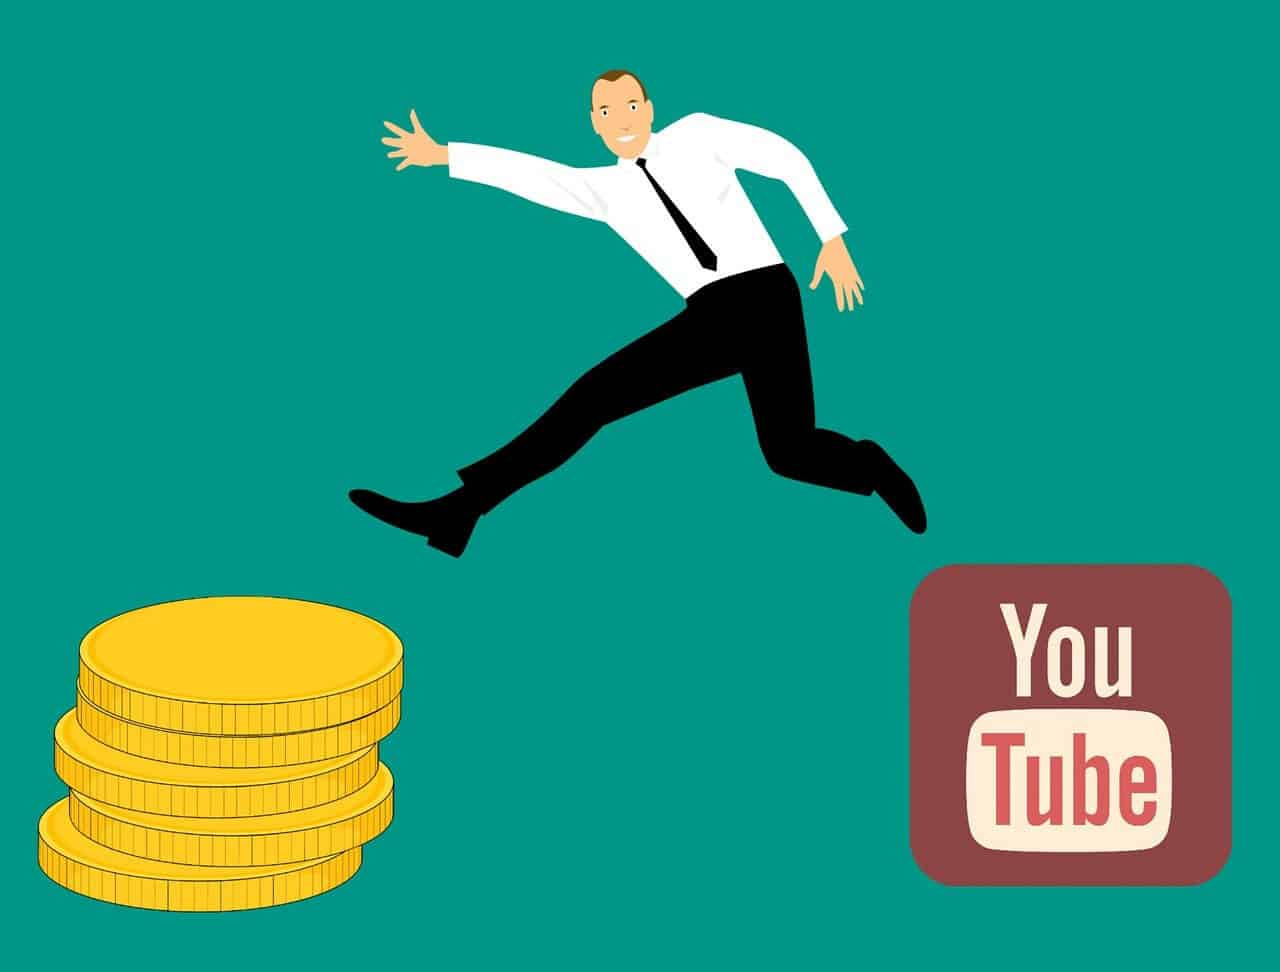 how to Make Money from YouTube Without AdSense?